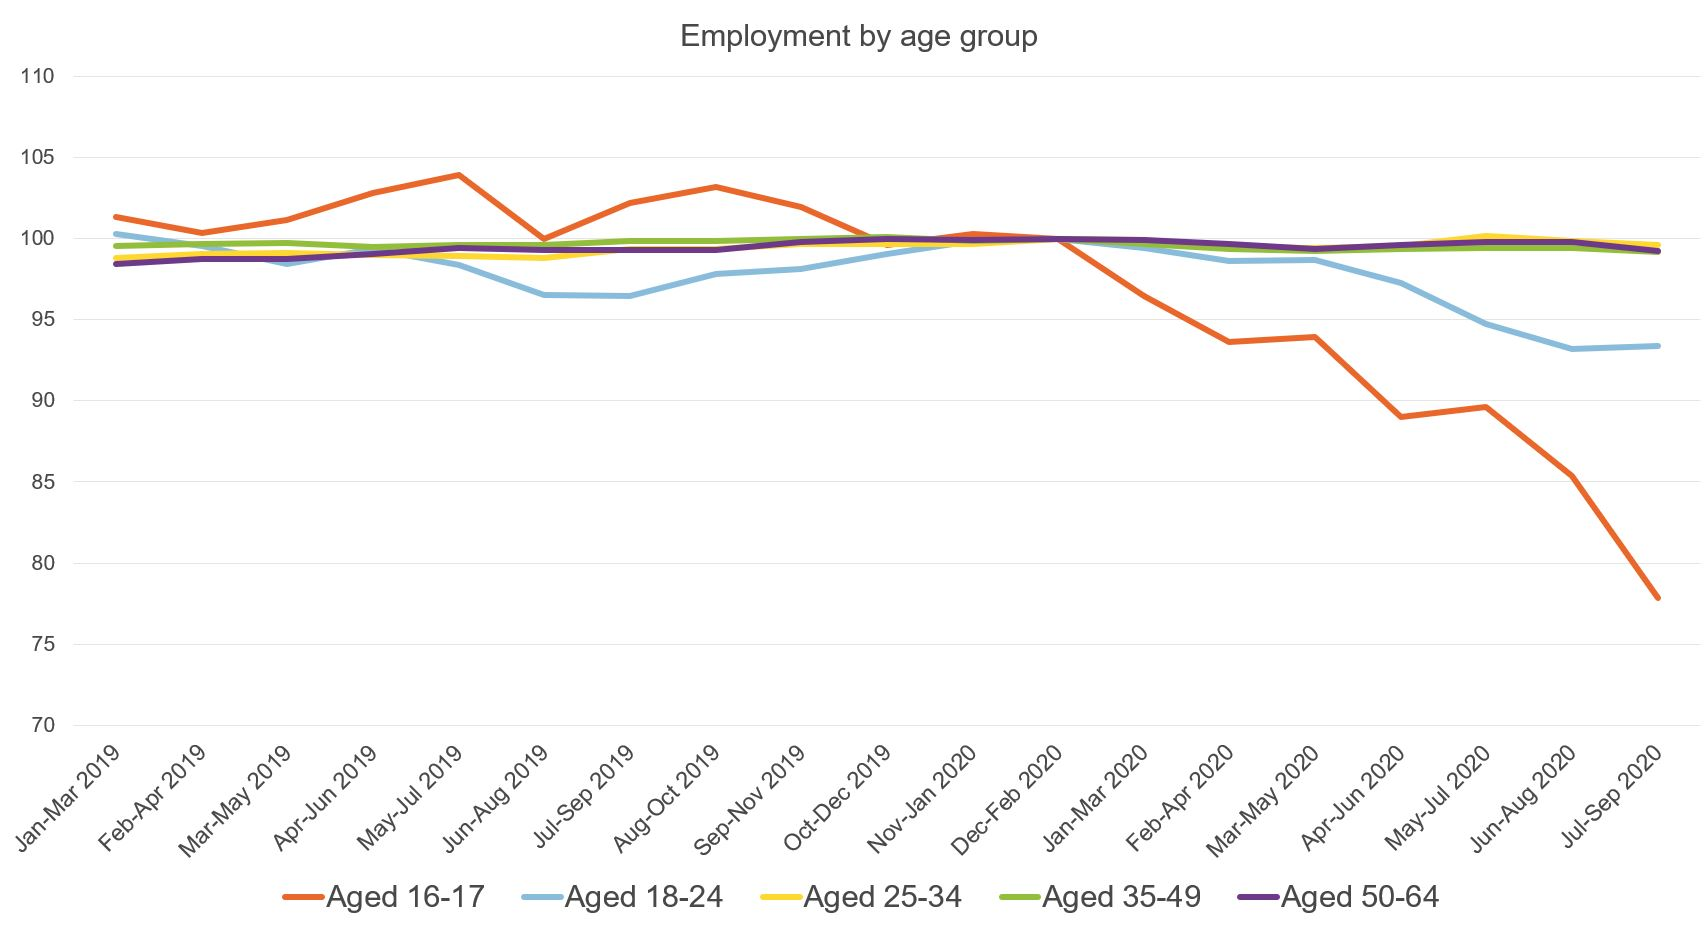 Figure showing employment by age group